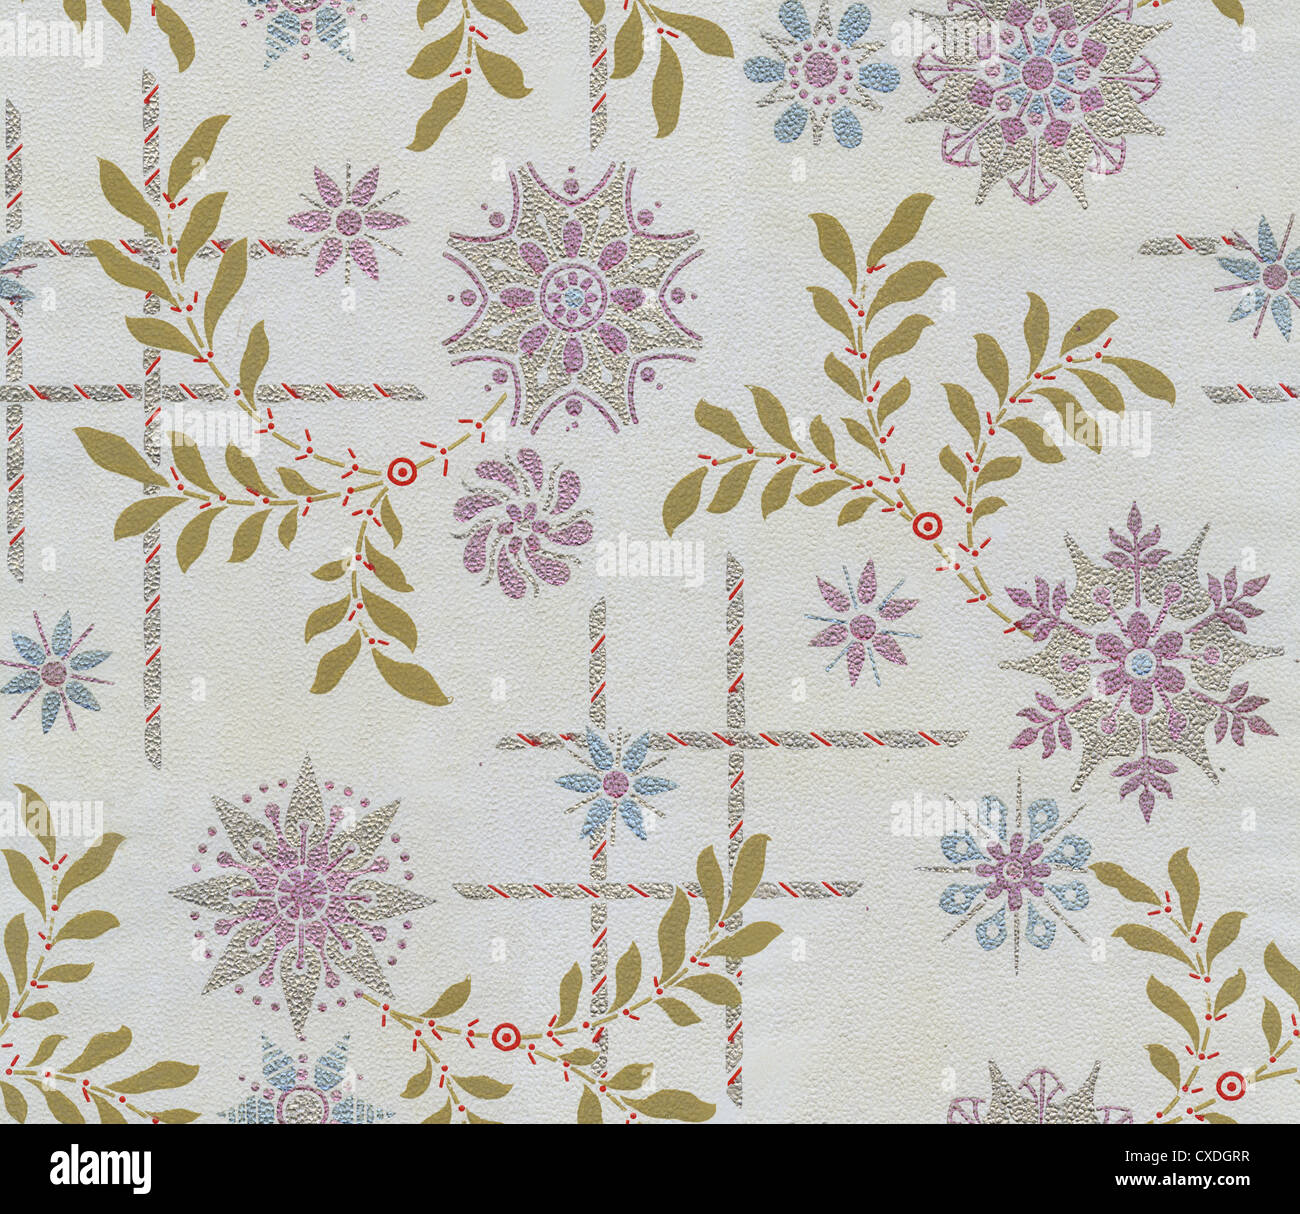 Authentic Wallpaper: Circa 1880s Victorian Wallpaper. This Authentic Fragment